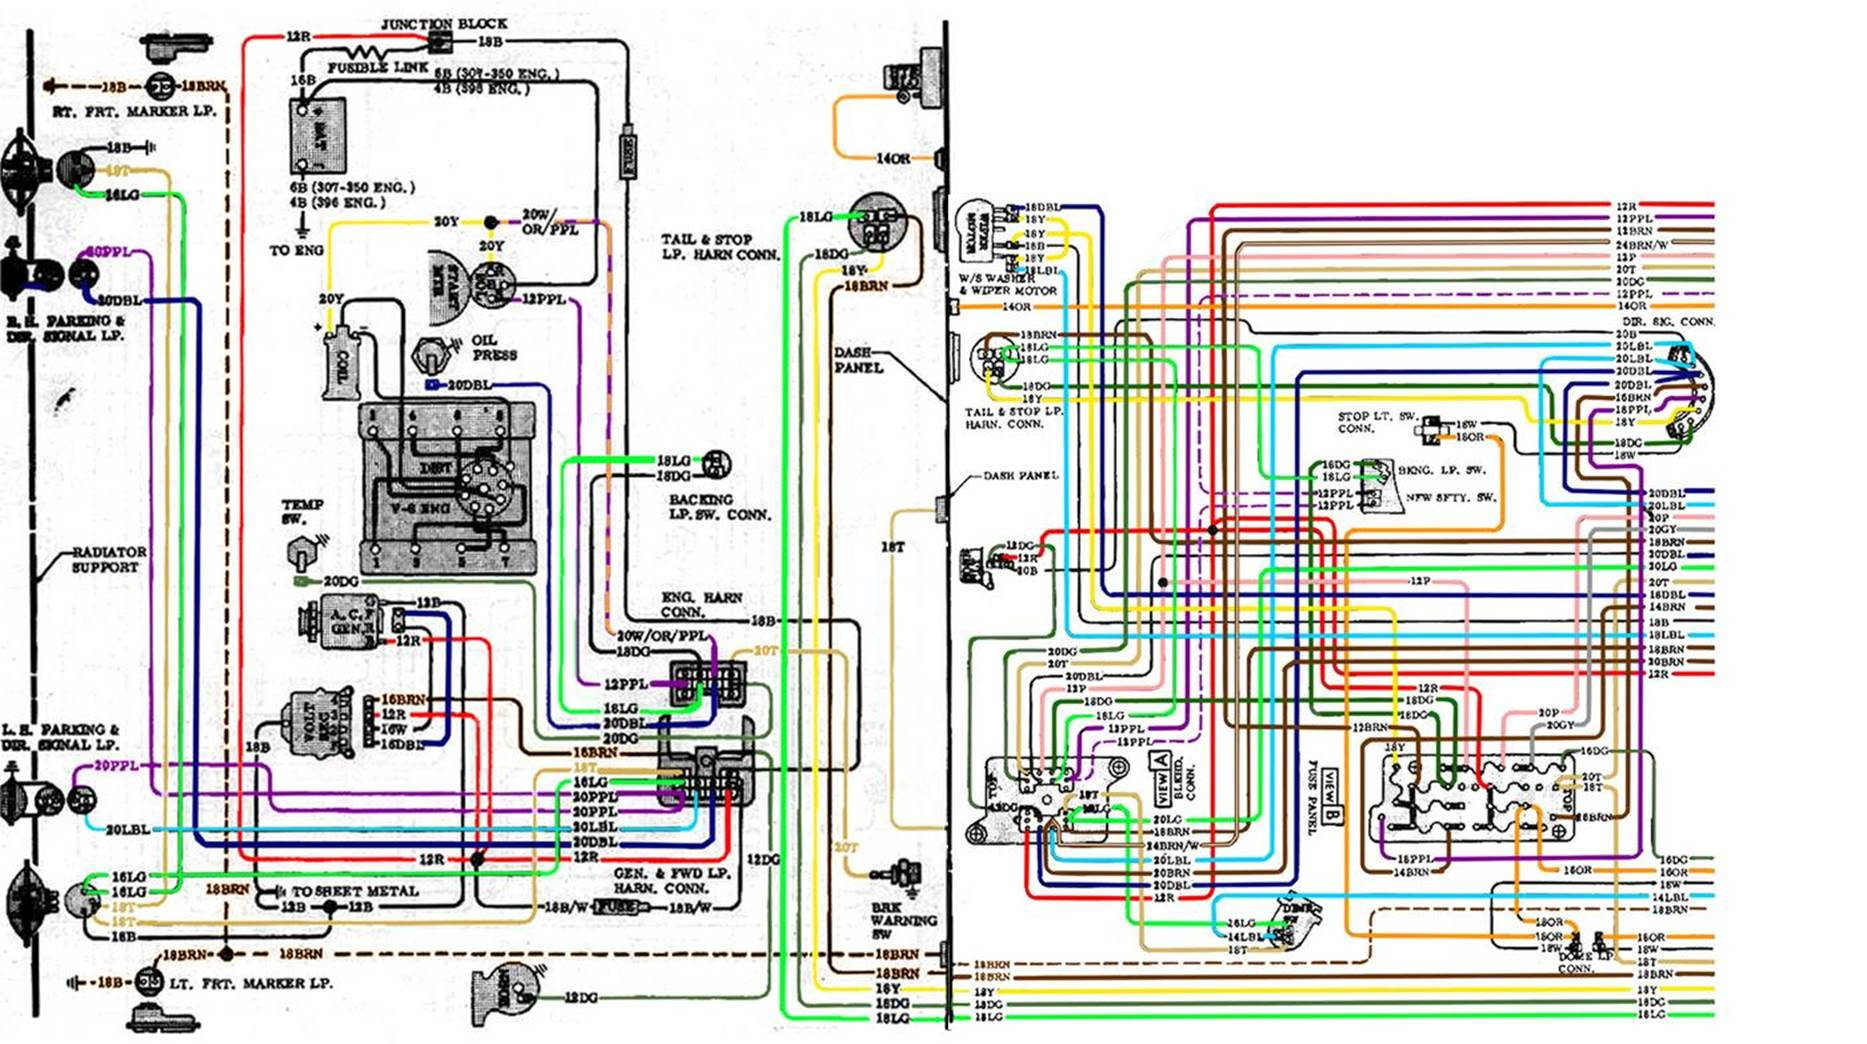 image002 67 72 chevy wiring diagram  at reclaimingppi.co